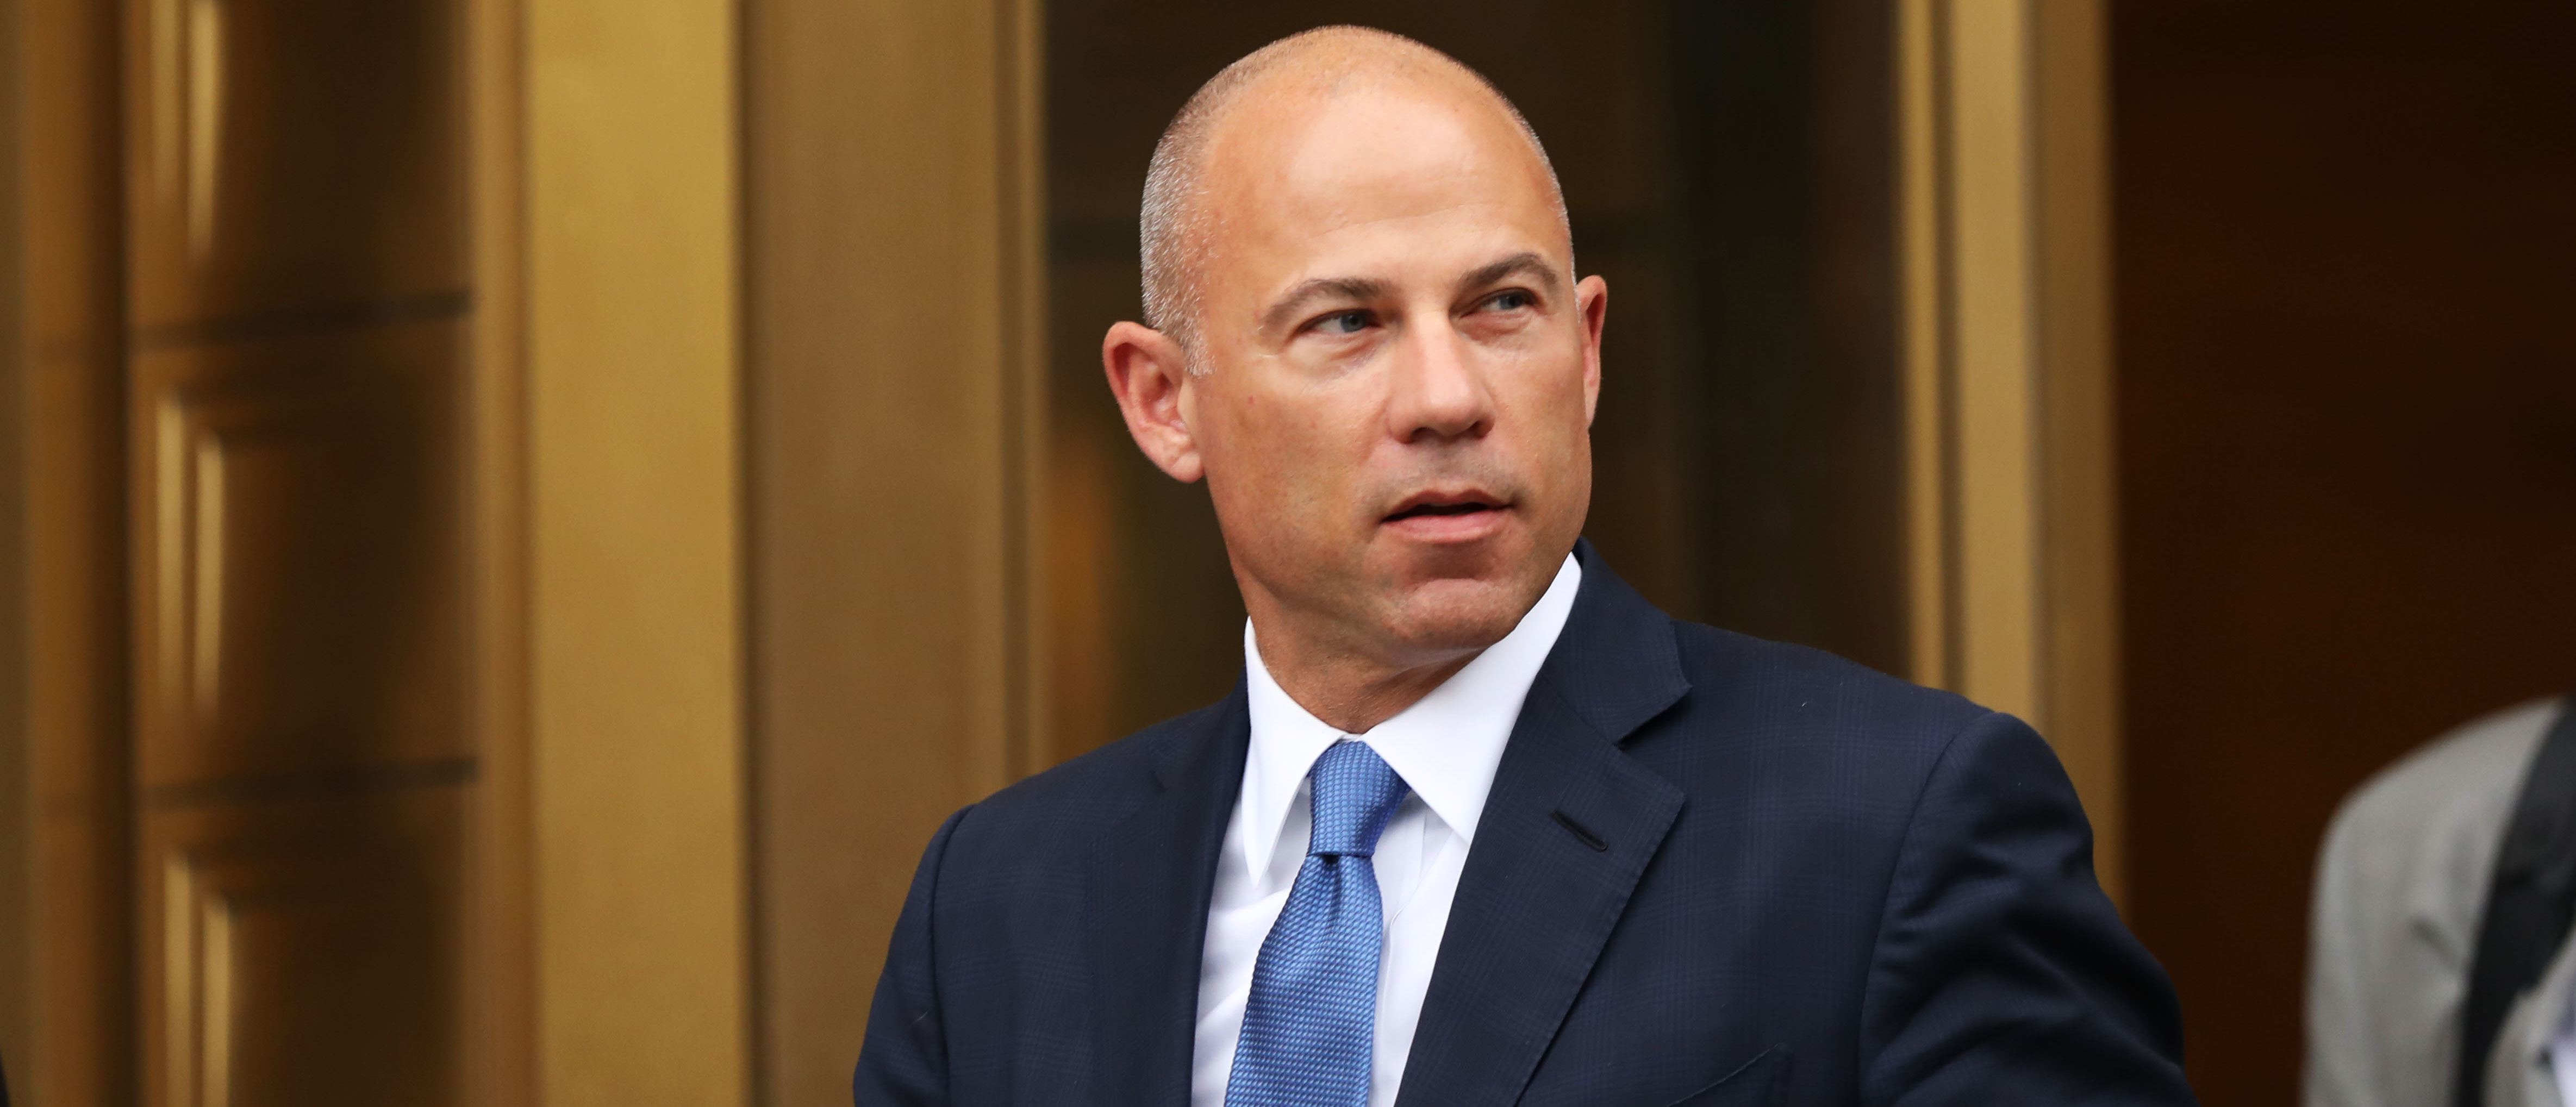 Grassley Seeks Update After Referring Avenatti, Swetnick To Justice Department For Kavanaugh Claims